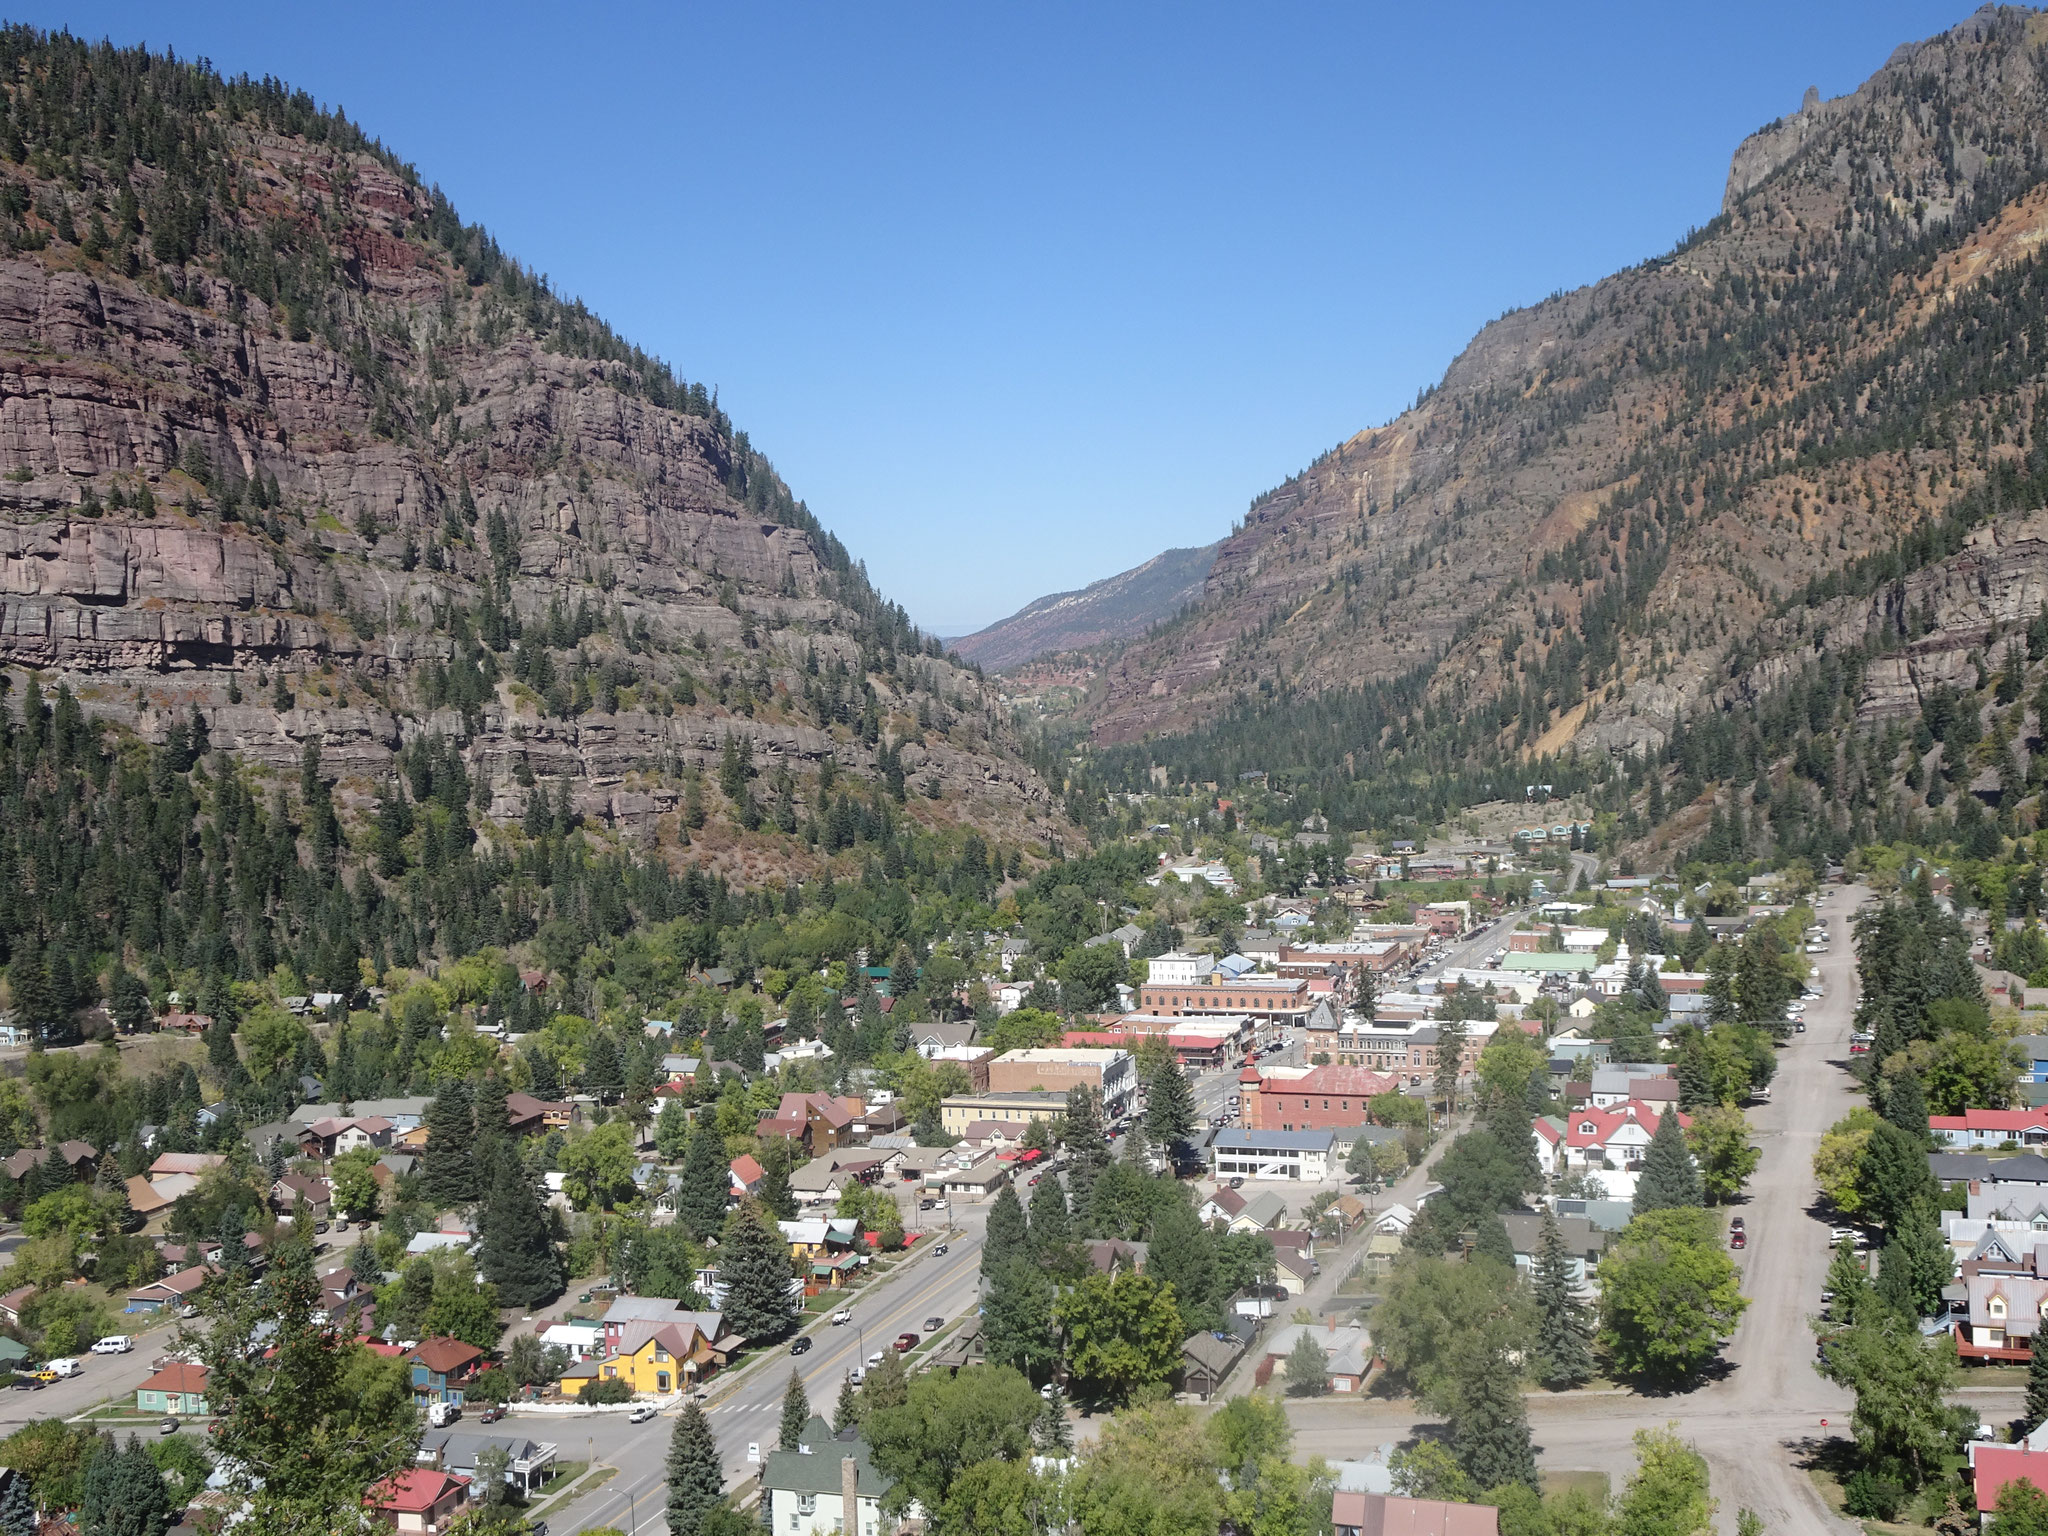 Ouray sur la Million Dollar Highway